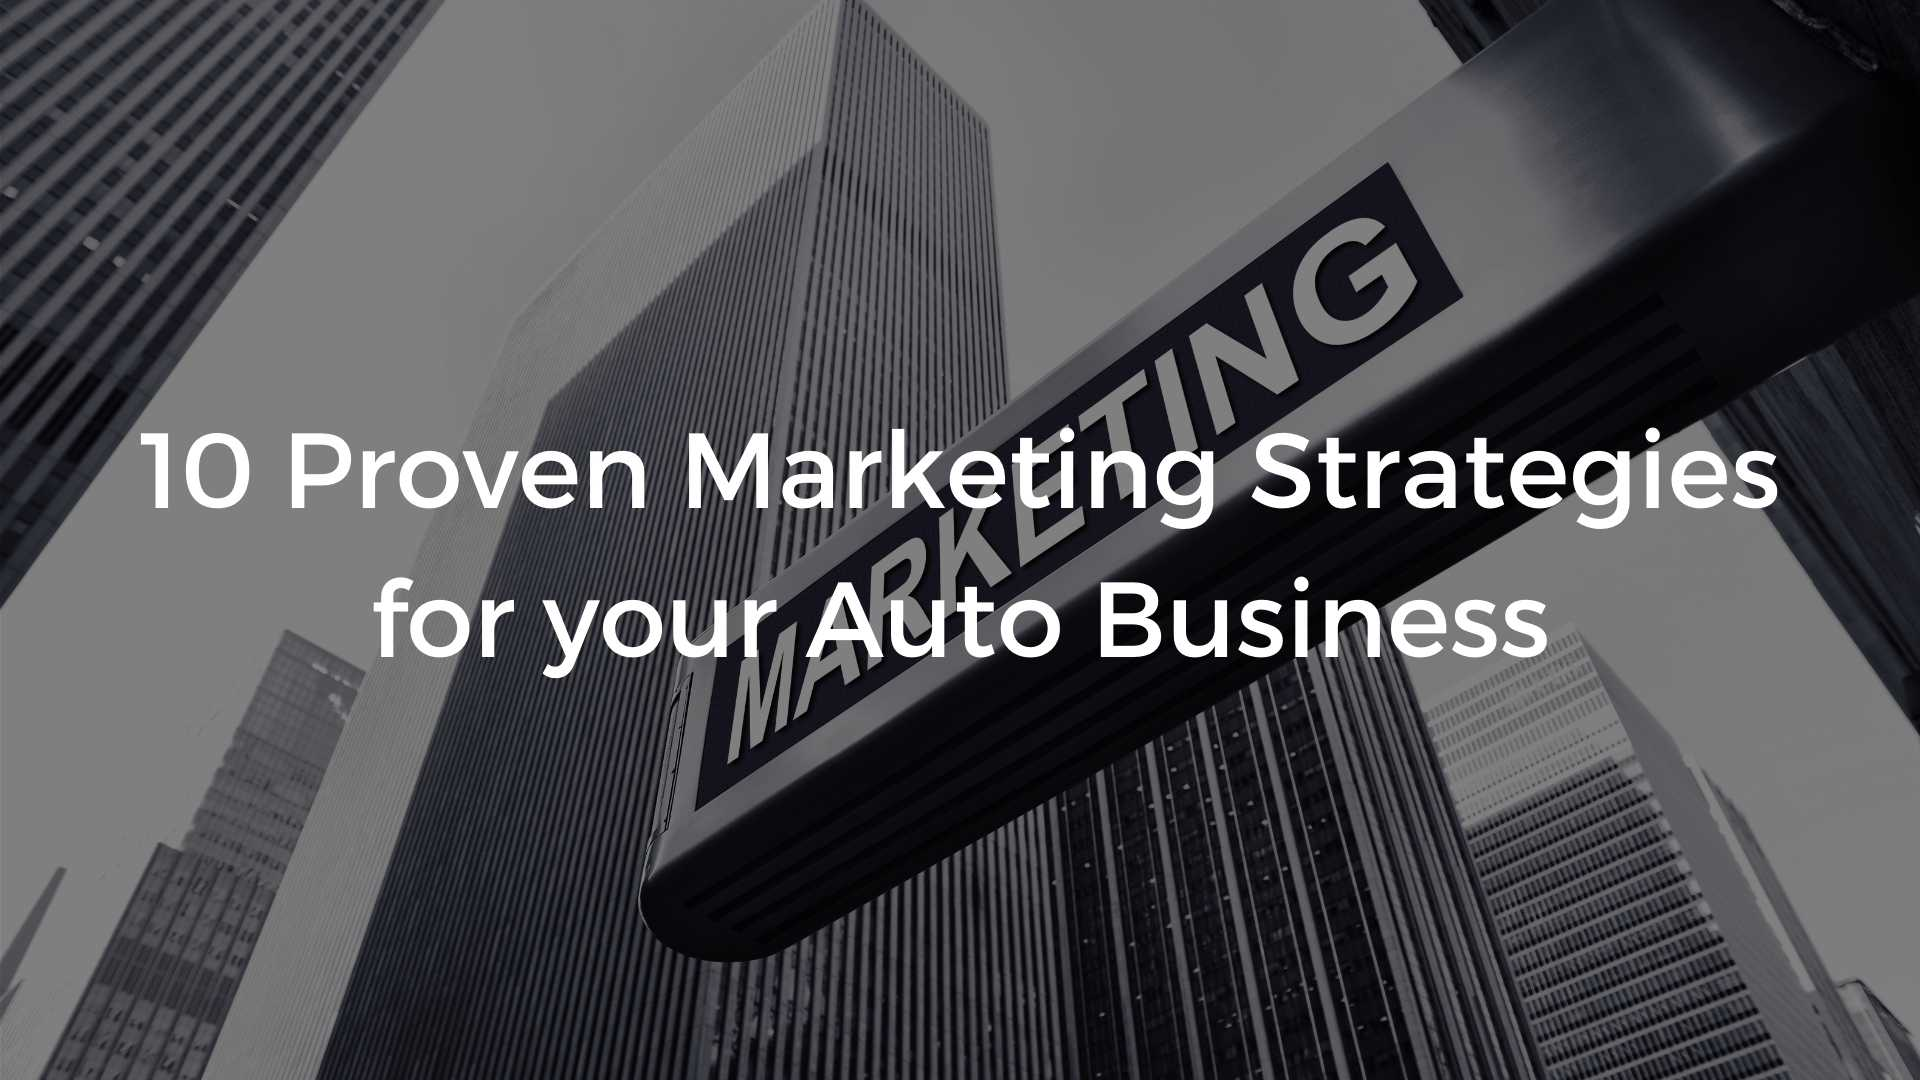 10 Proven Marketing Strategies For Your Auto Repair Shop 